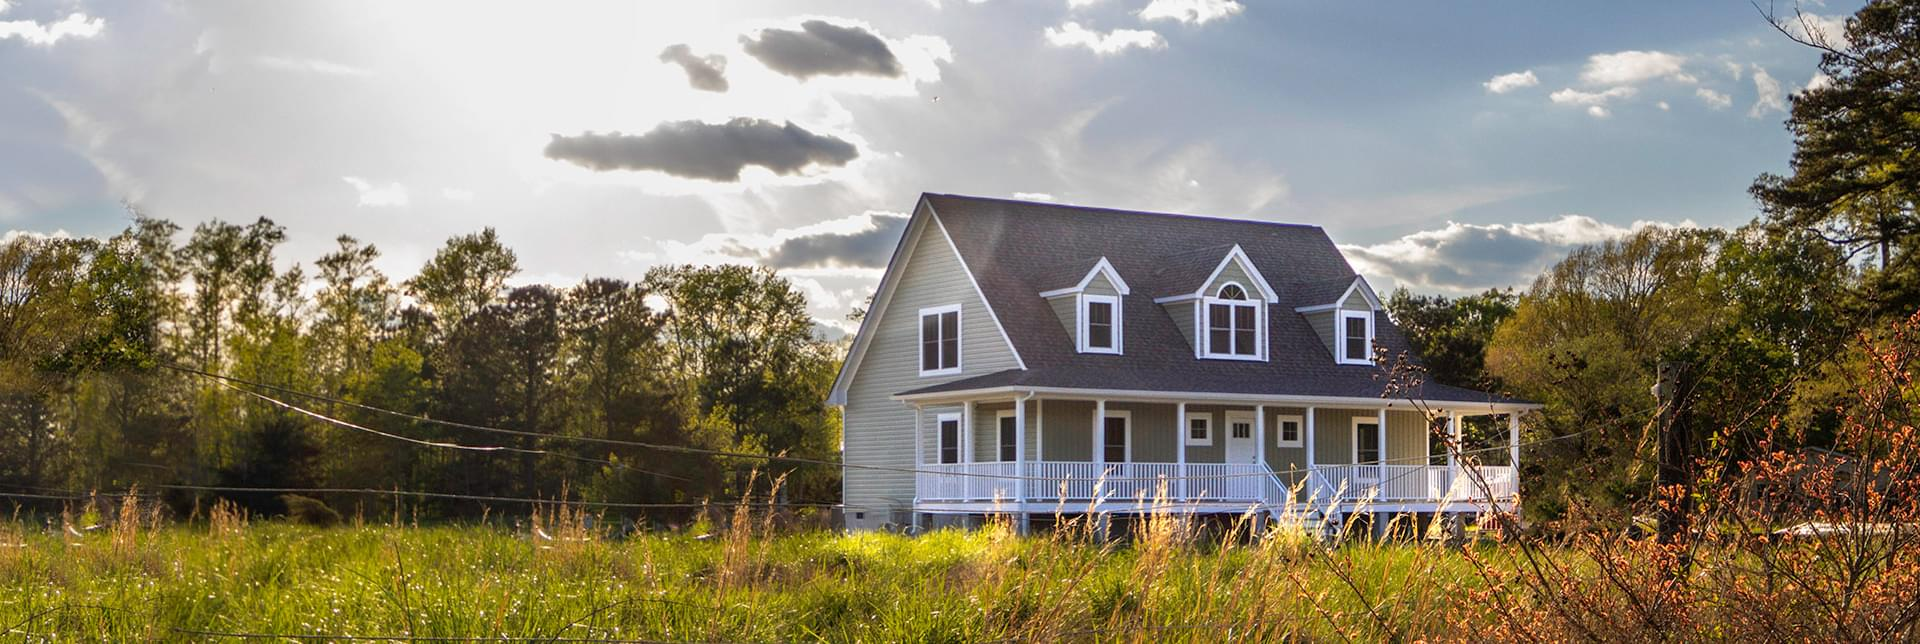 New Homes in Page County VA